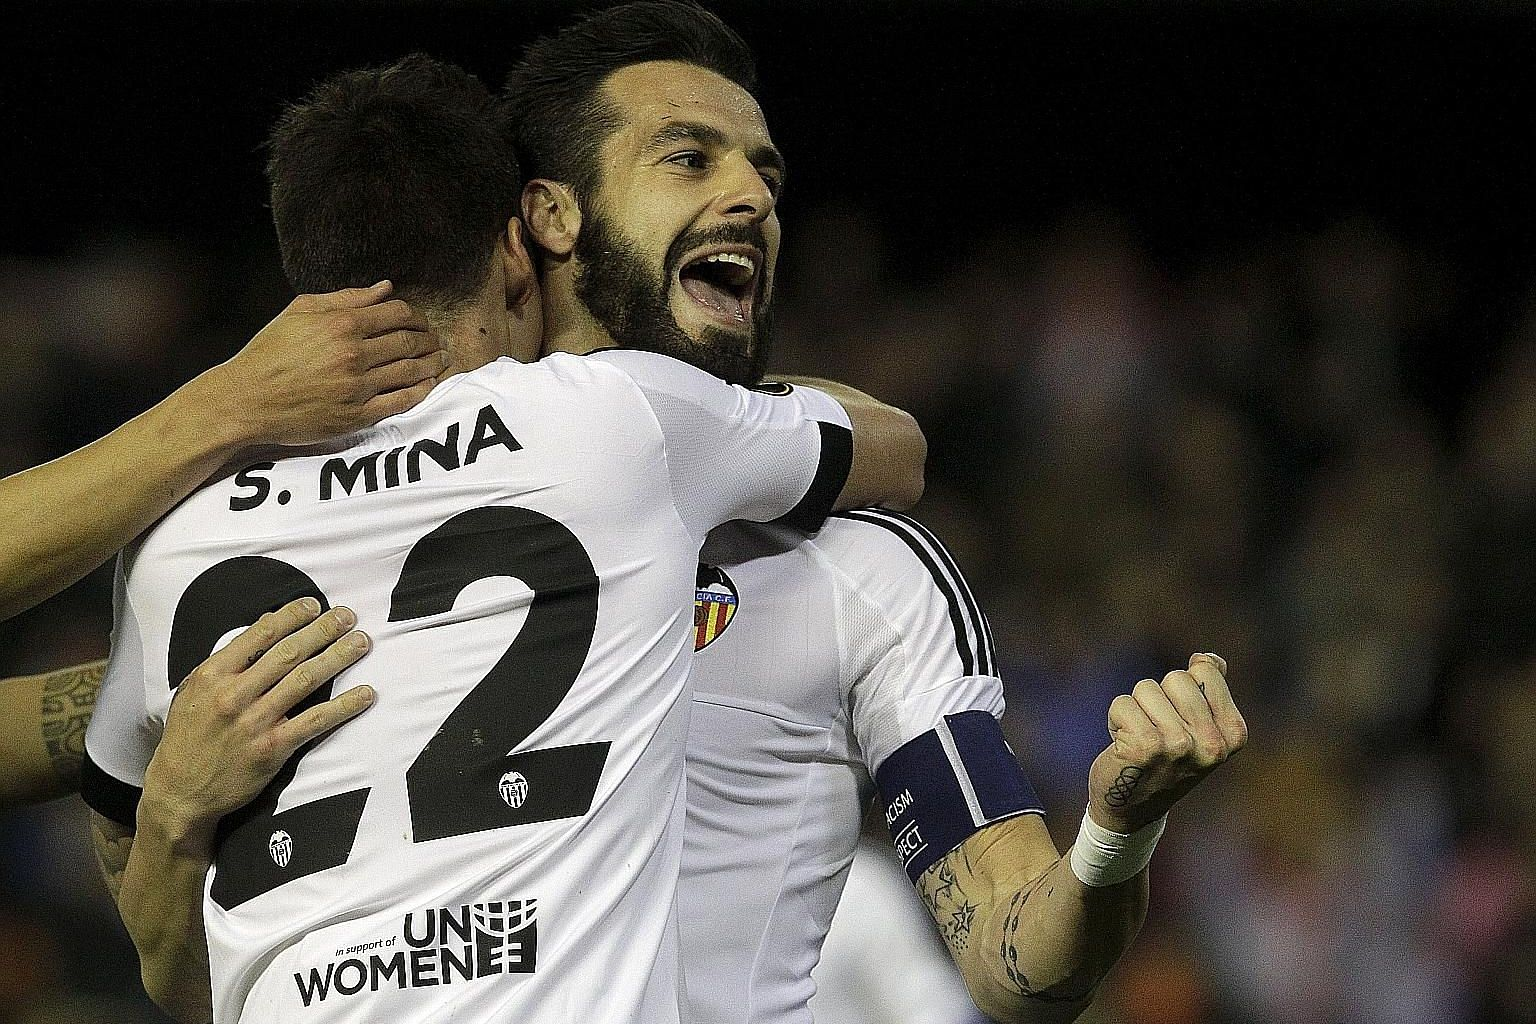 The clenched fist of Valencia's Alvaro Negredo speaks volumes as he embraces team-mate Santi Mina during the 6-0 rout of Rapid Vienna in their Europa League clash. The win further eased the pressure on Gary Neville, who turned 41 that day.